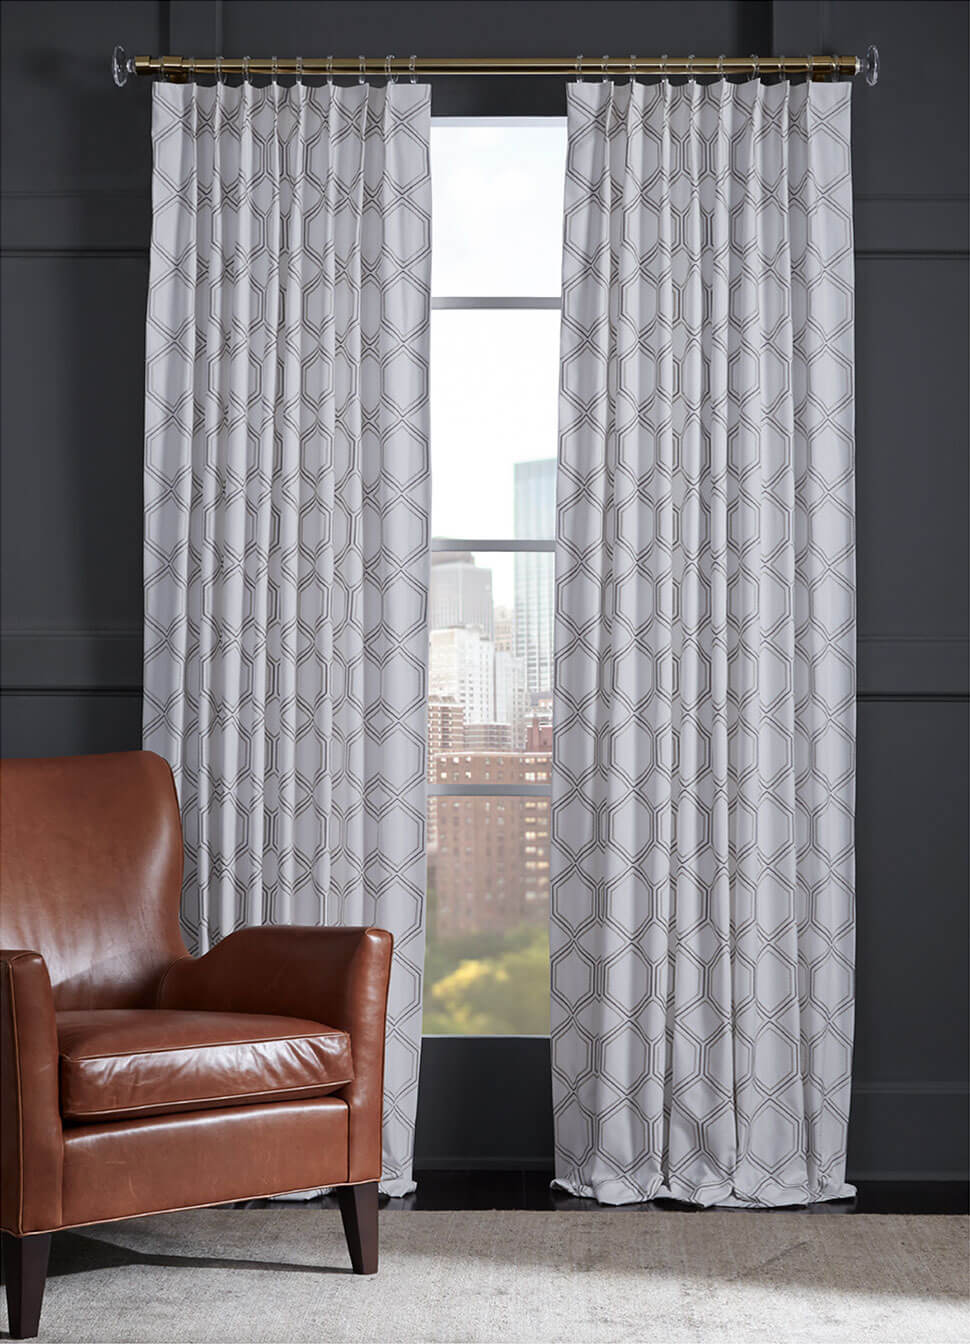 Spencer drapery collection: Pattern